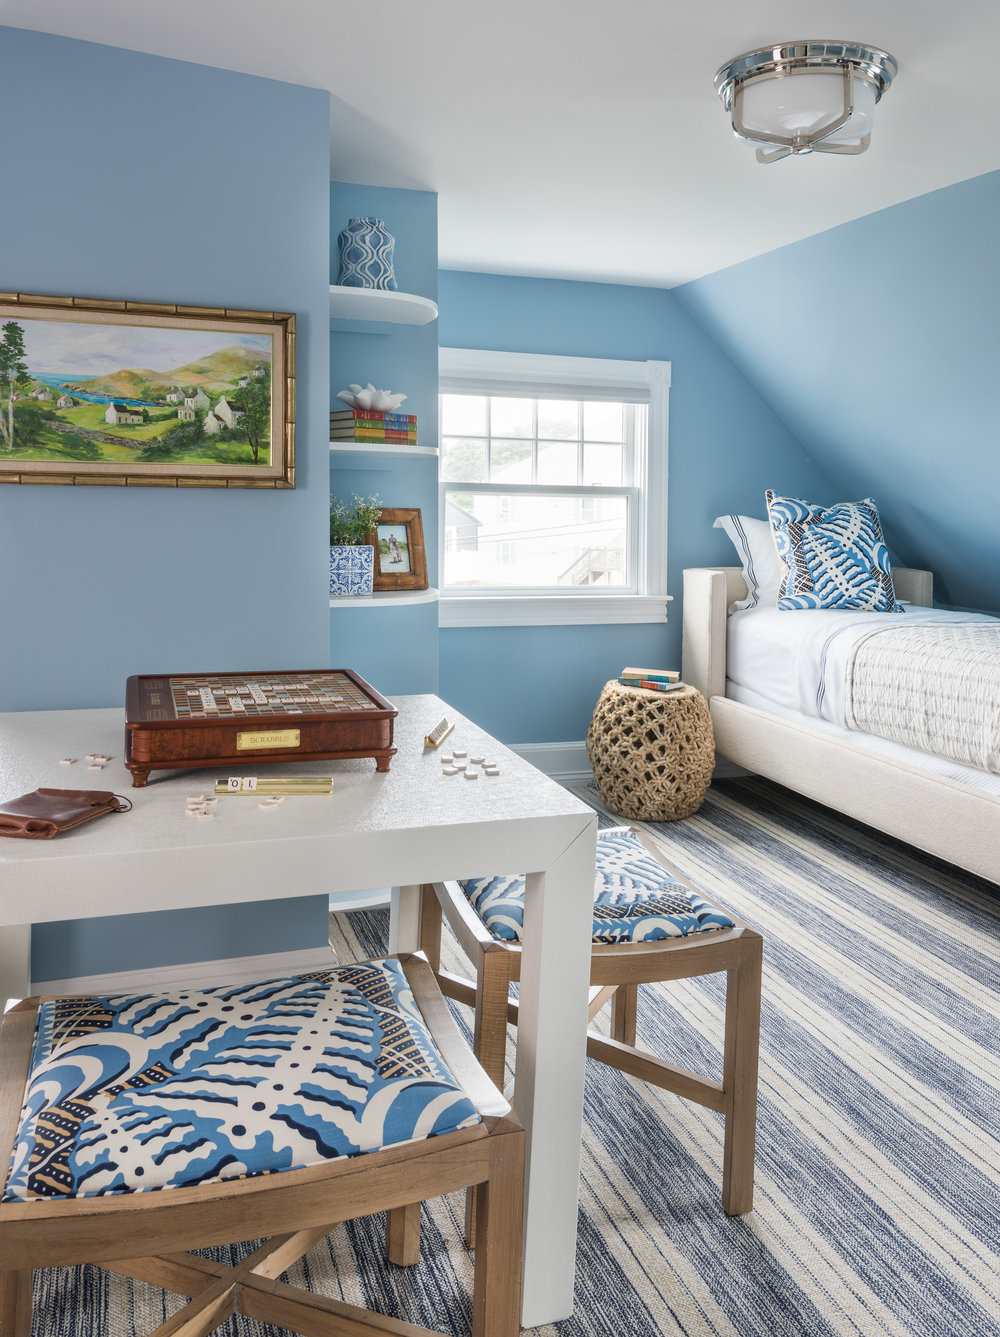 Rhode Island, Newport, Easton's Beach, bedroom, blue bedroom, blue rug, blue walls, beach decor, beach style, interior design